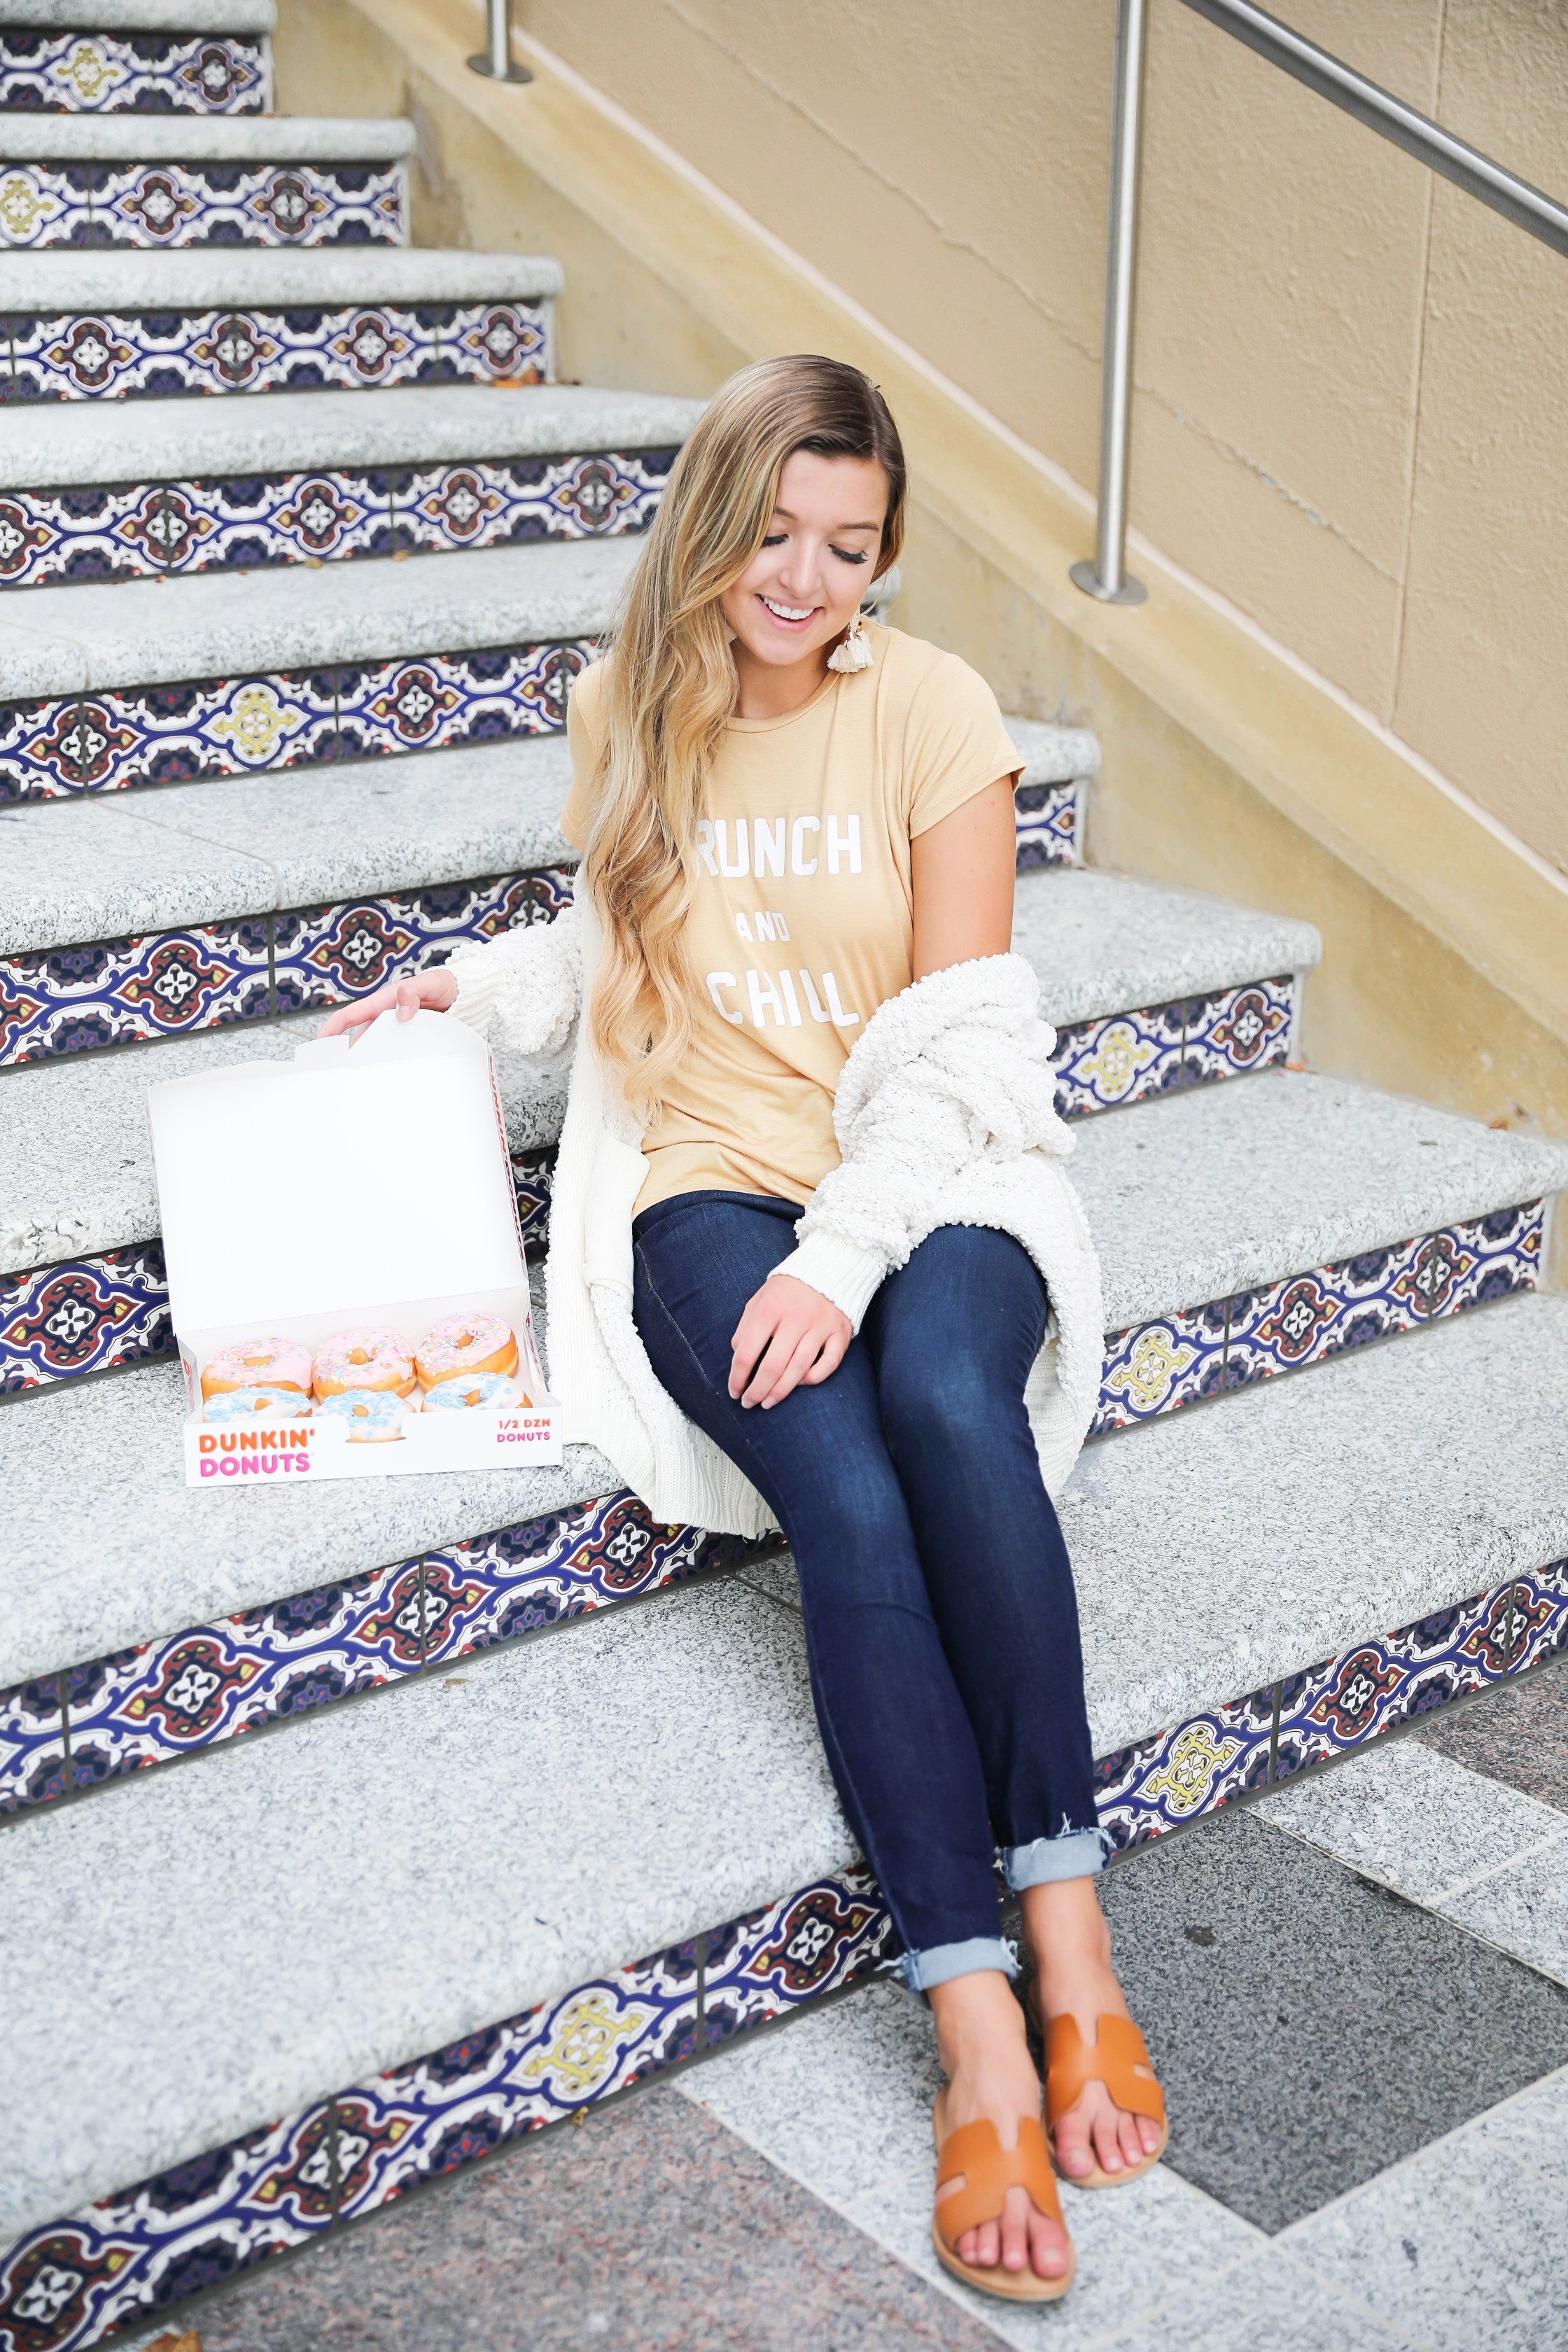 Brunch and chill tee! Super cute mustard yellow brunch tshirt paired with the cutest inexpensive dark blue jeans! Paired the look with my new ivory cardigan from the nordstrom anniversary sale 2018! Details on fashion blog daily dose of charm by lauren lindmark